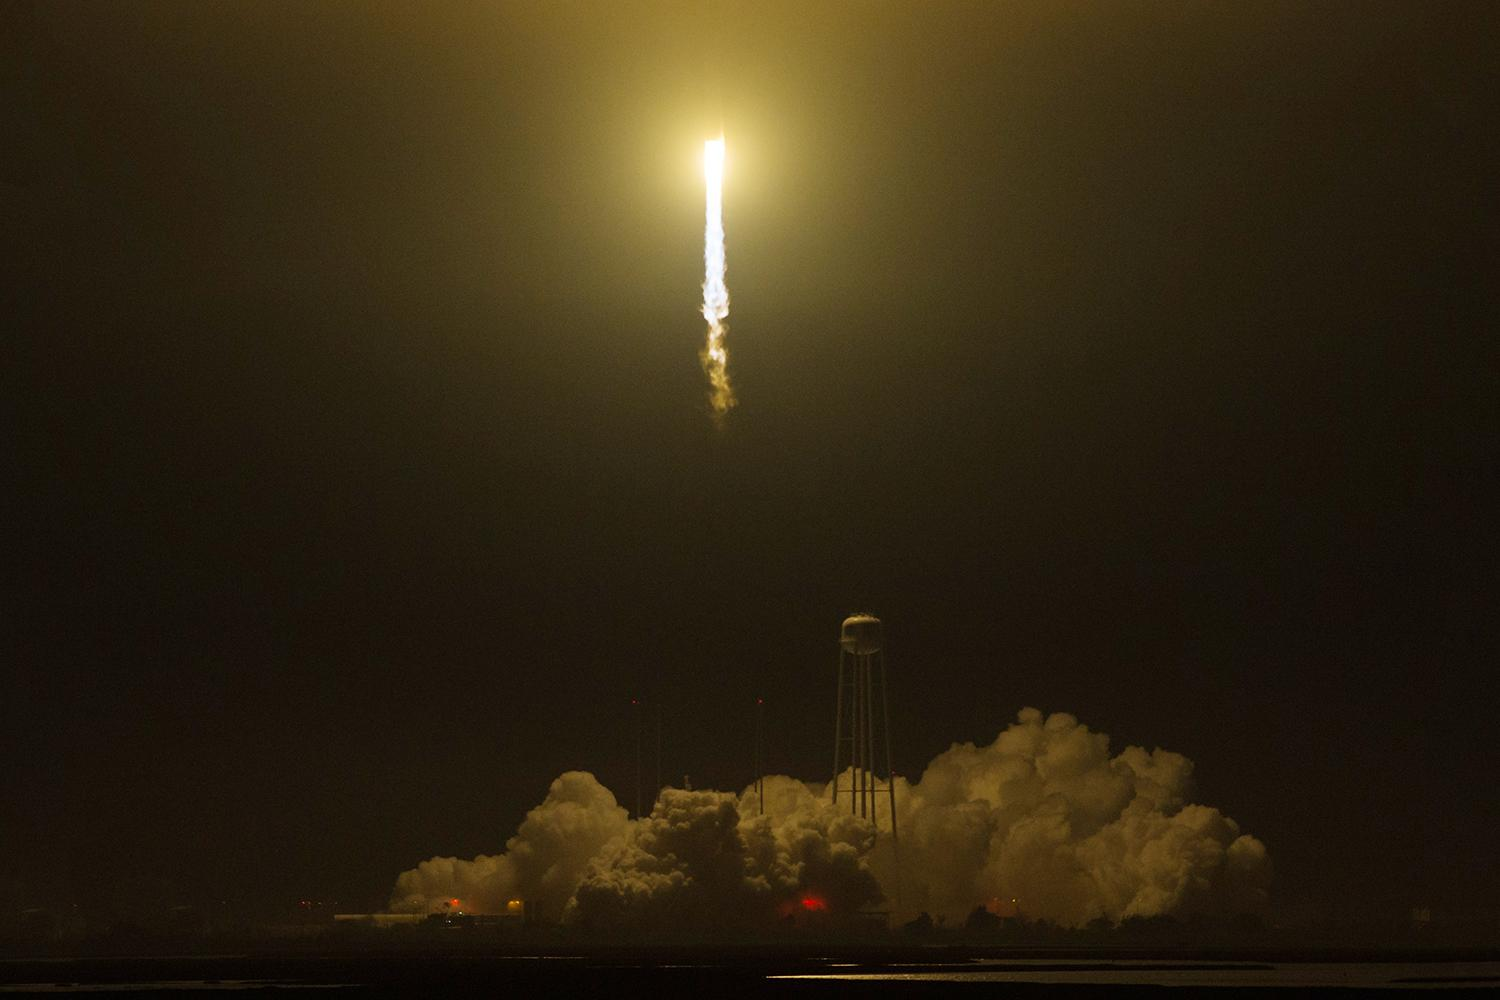 An Orbital ATK Antares rocket launches May 21 from NASA's Wallops Flight Facility in Virginia with the Cold Atom Laboratory aboard a Cygnus spacecraft.